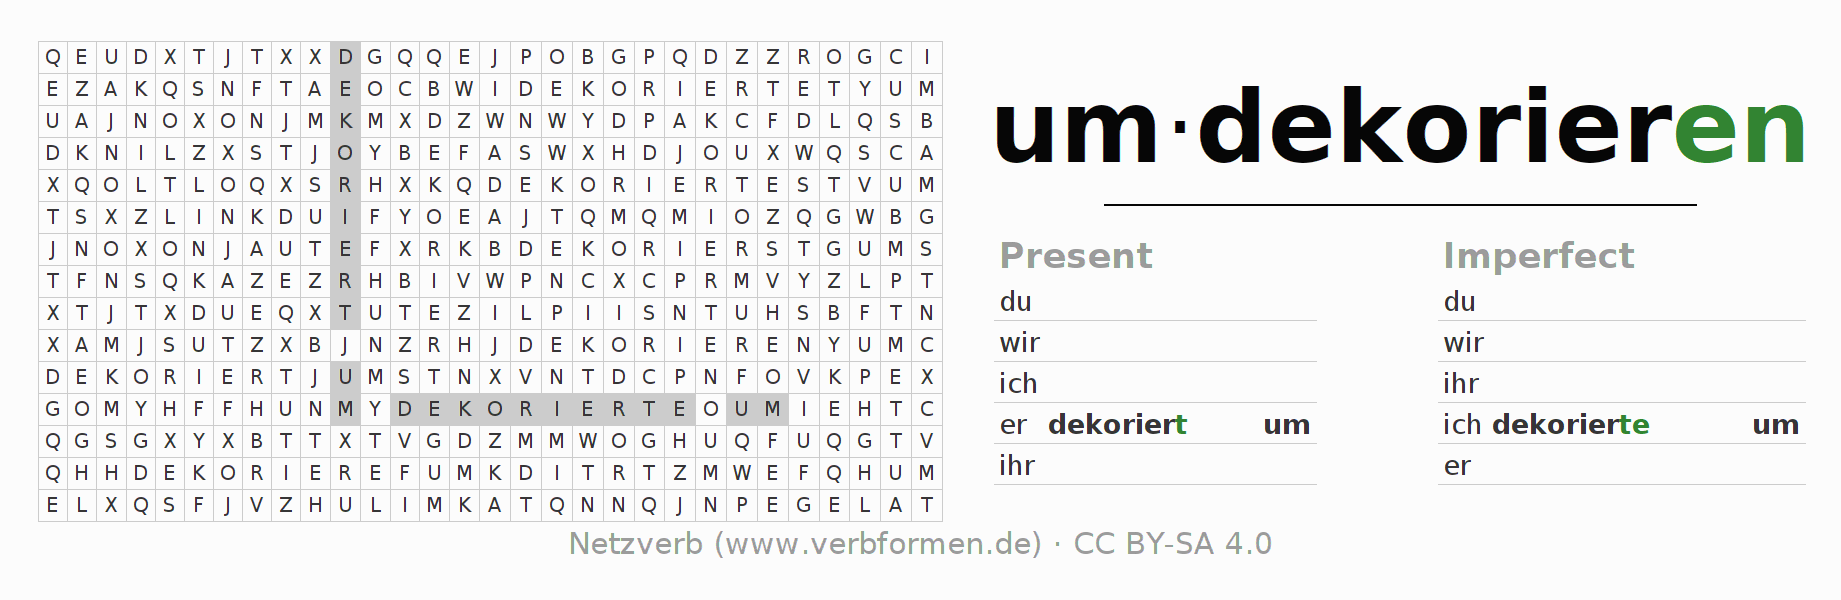 Word search puzzle for the conjugation of the verb umdekorieren